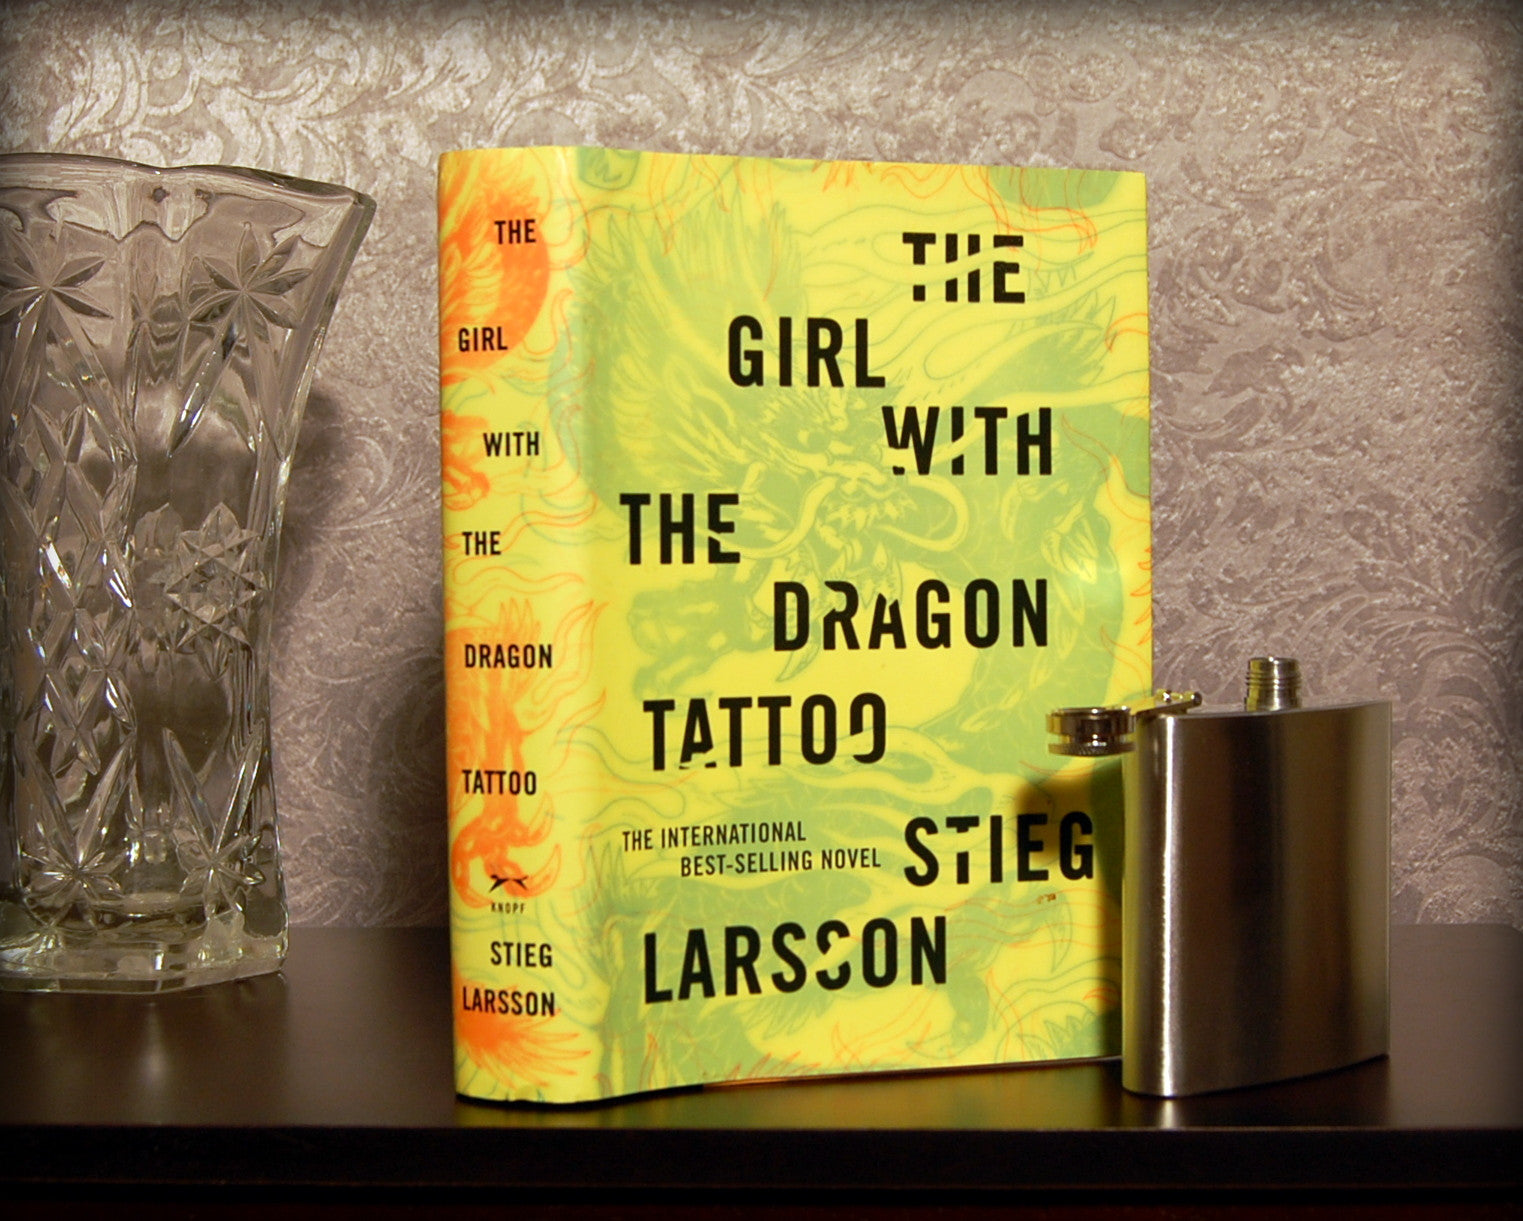 The Girl with the Dragon Tattoo / Stieg Larsson - Secret Safe Books